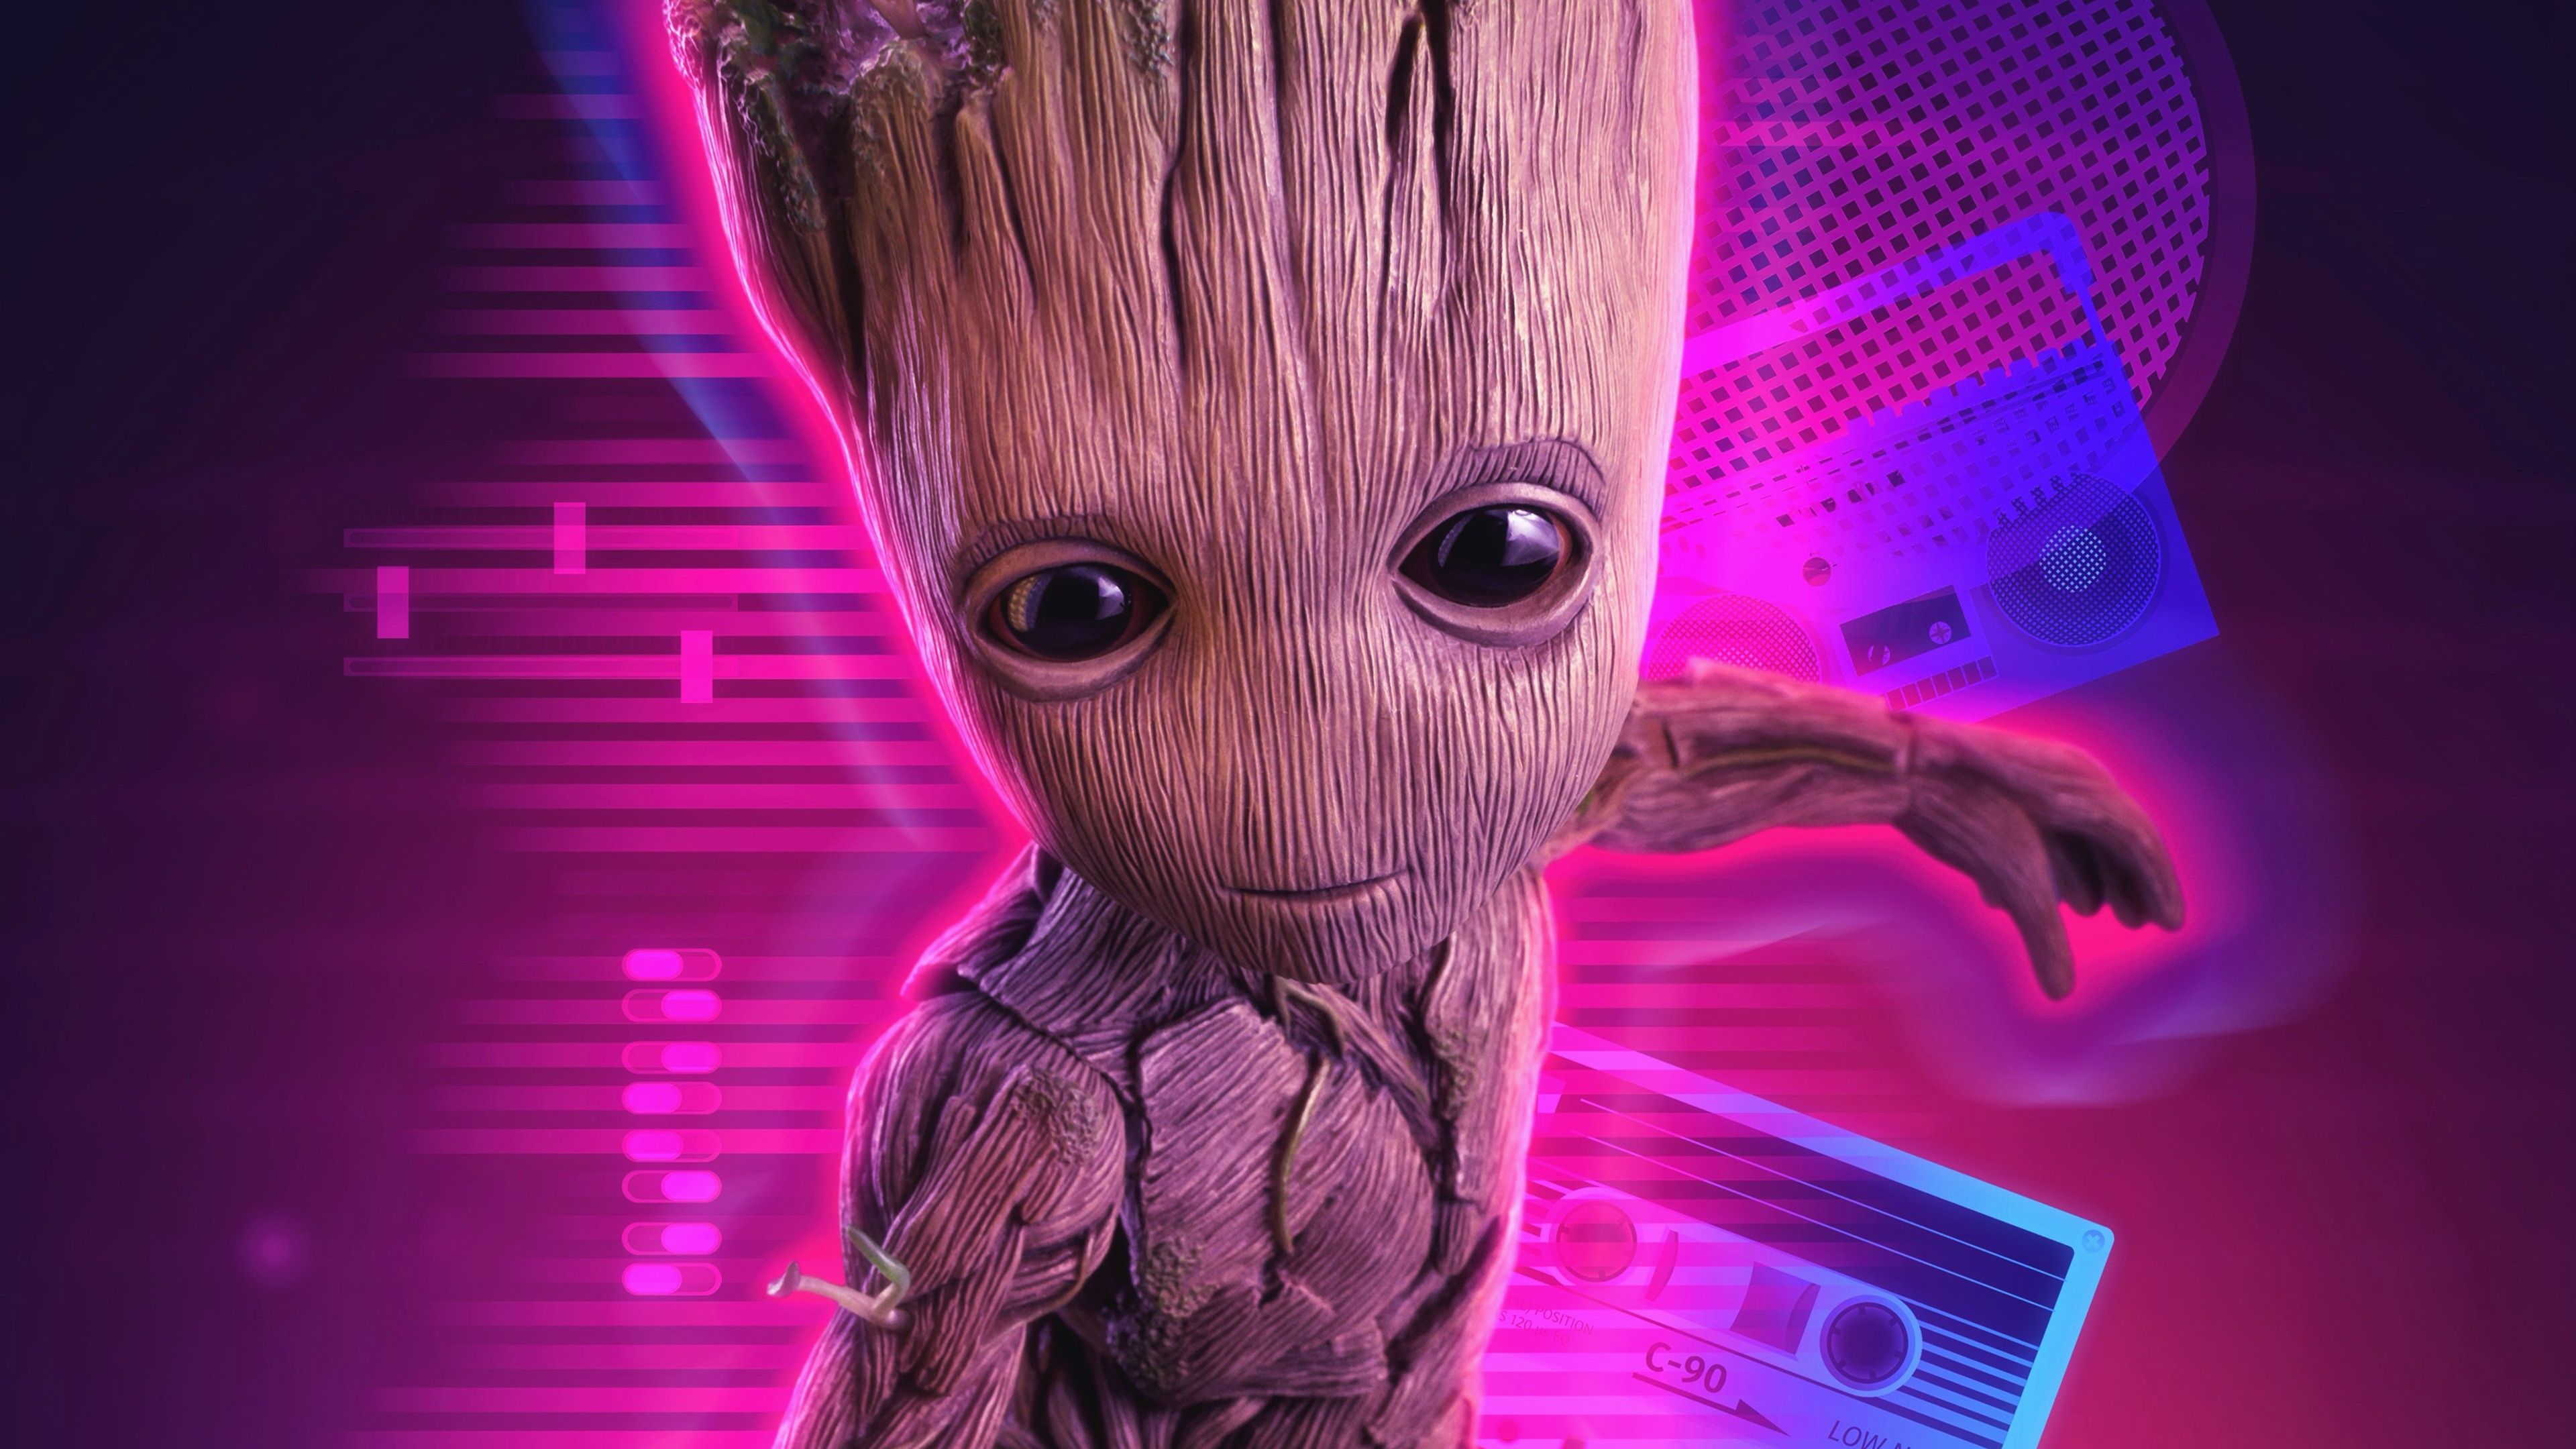 Elegant Baby Groot Angry With Images Wallpaper Pc 4k